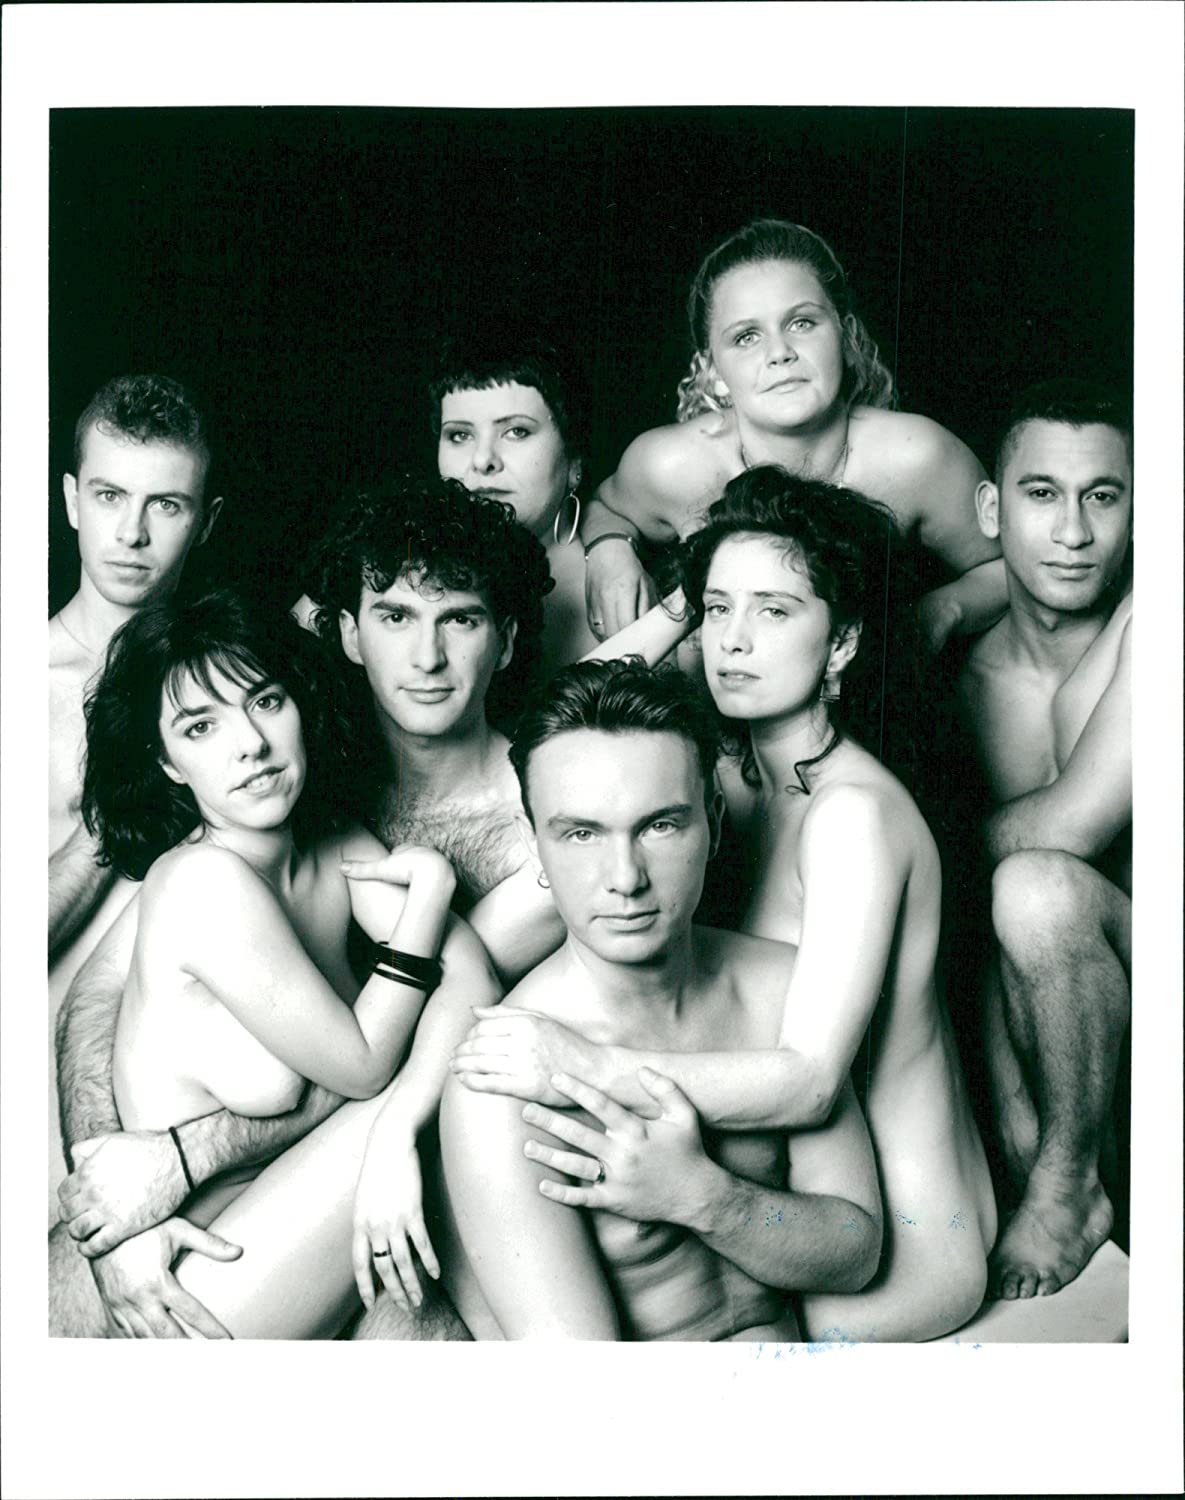 Amazon.com: Vintage photo of group of naked people.: Entertainment  Collectibles